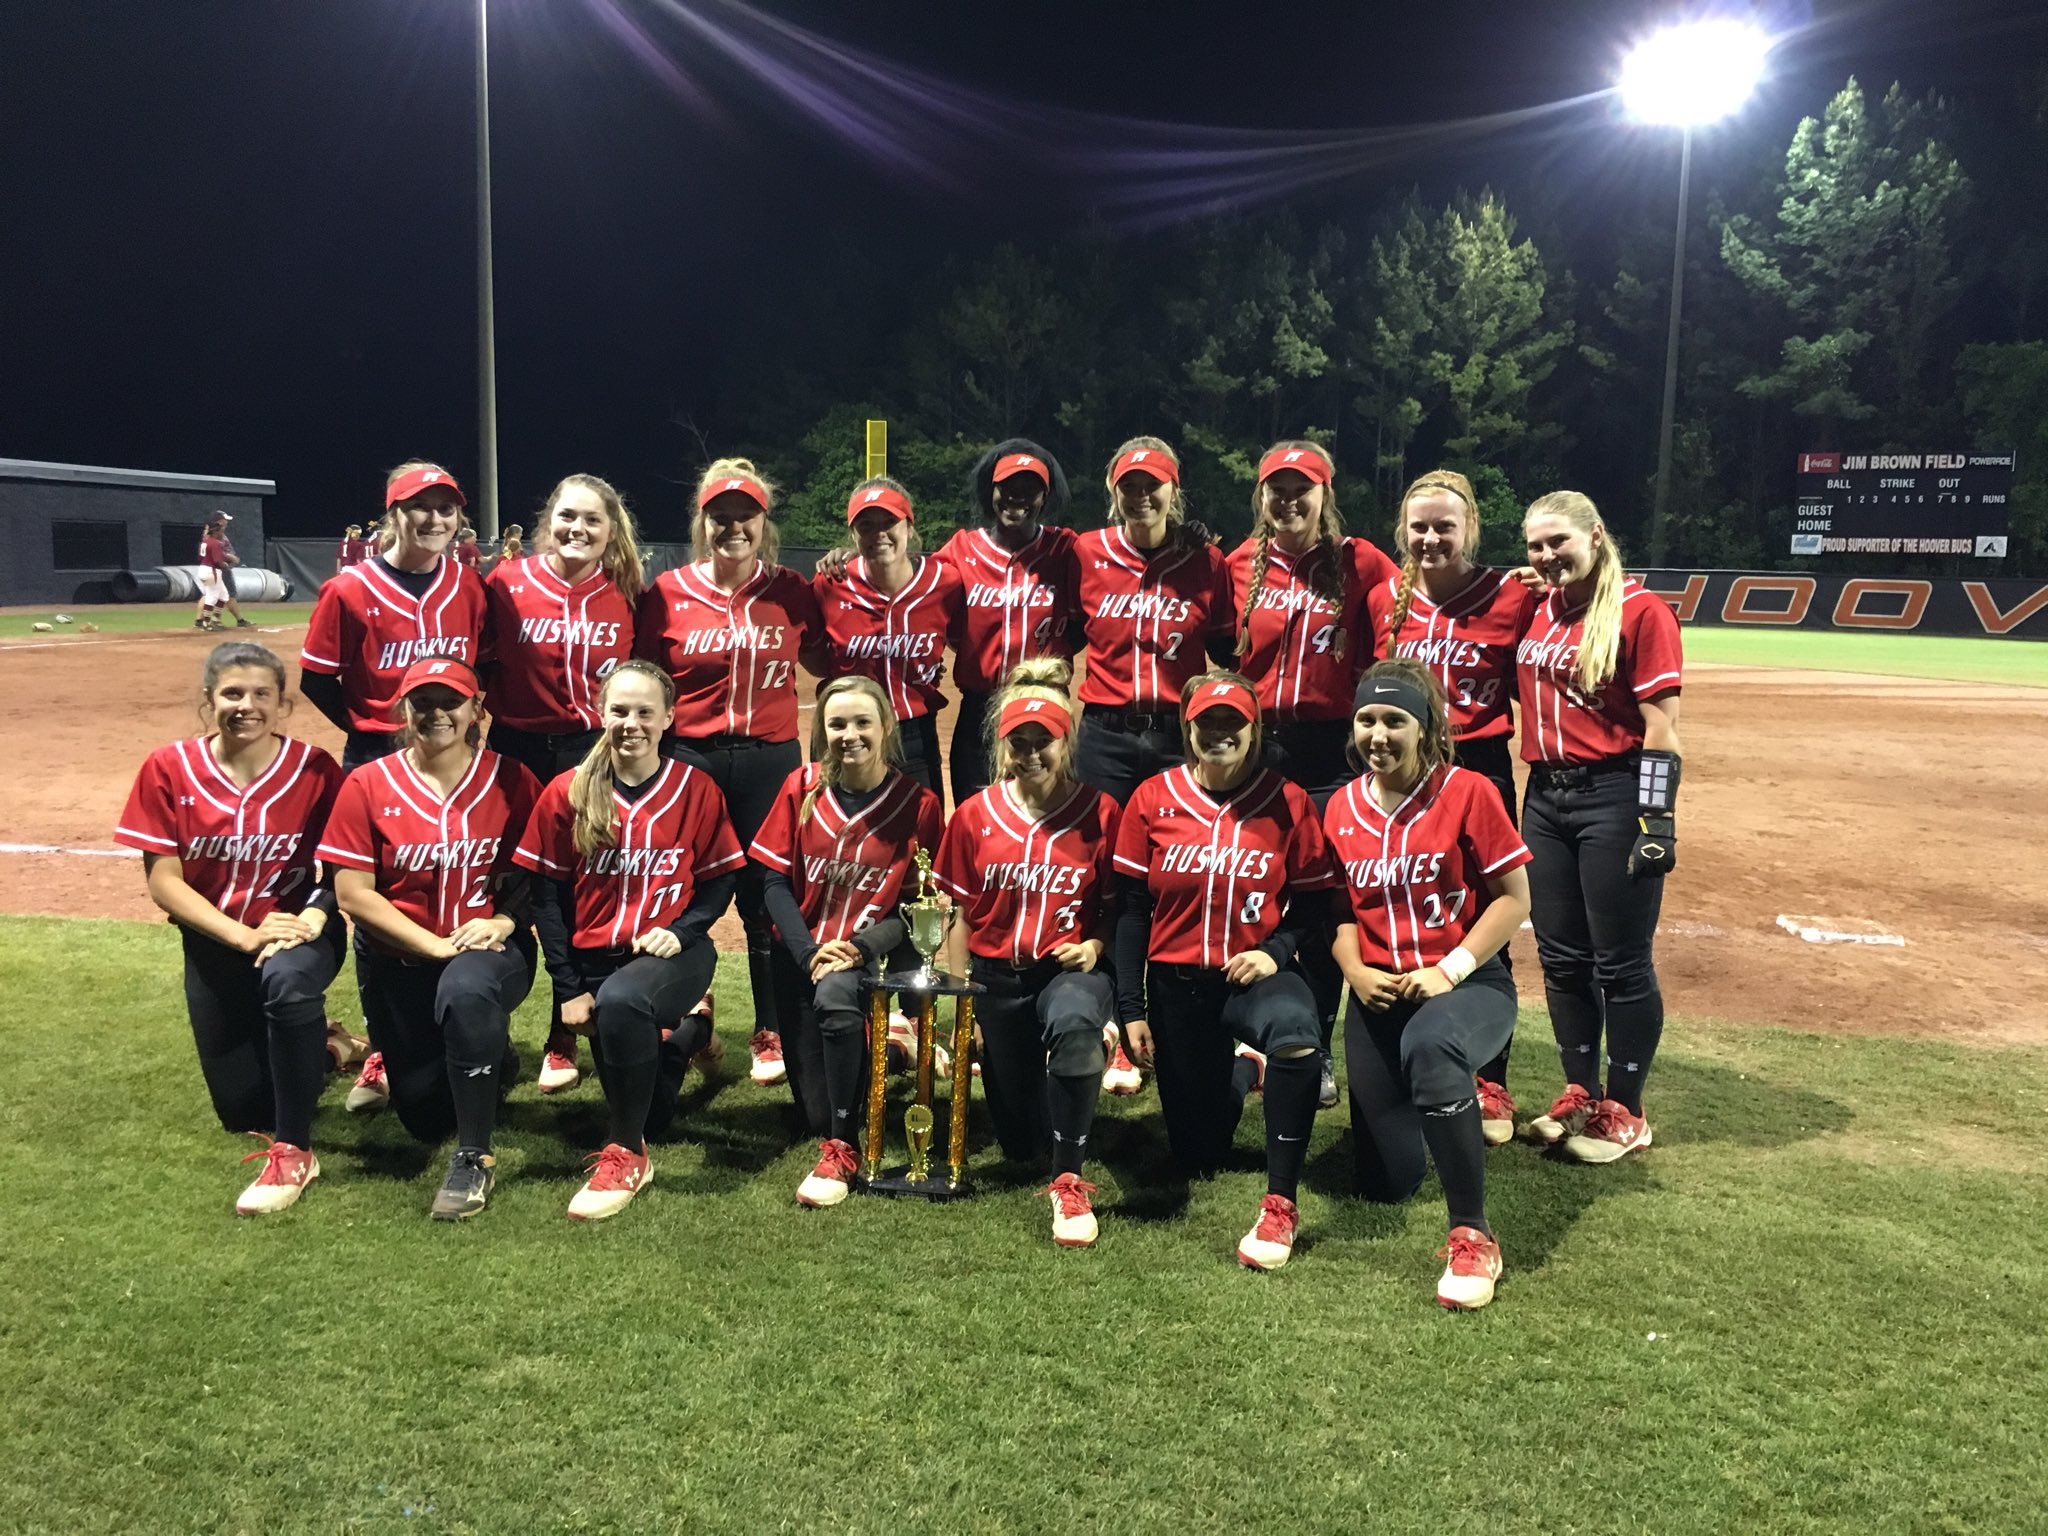 Hewitt-Trussville softball begins area bracket play at home today (Tuesday)